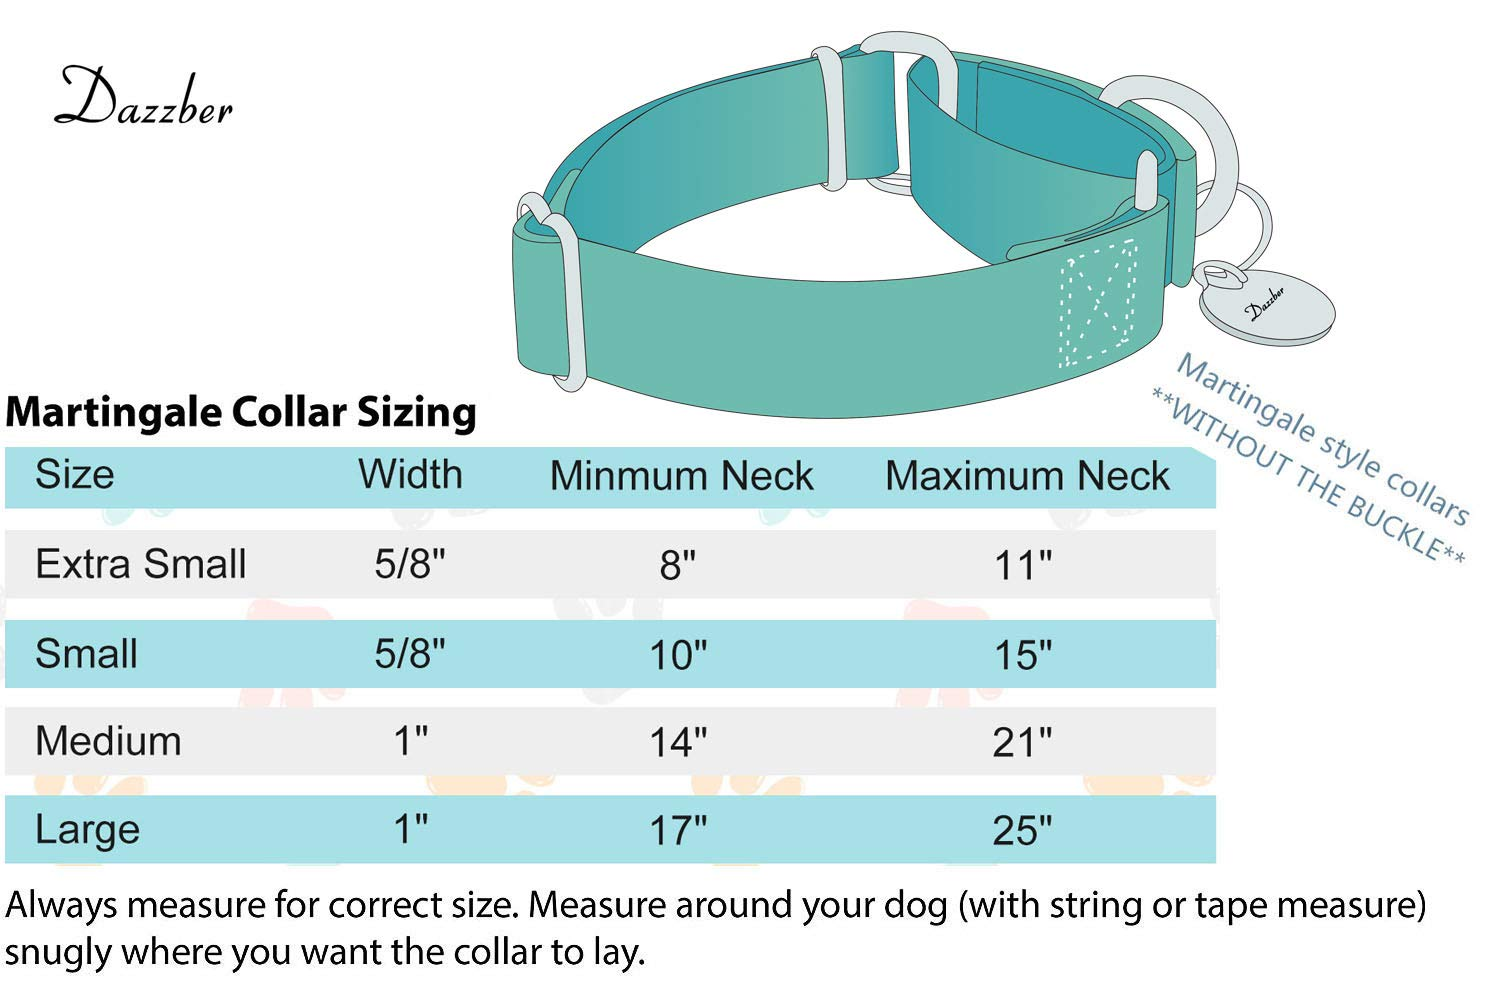 Dazzber Martingale Collar Dog Collar No Pull Pet Collar Heavy Duty Dog Martingale Collars Silky Soft with Unique Geometric Pattern for Medium and Large Dogs